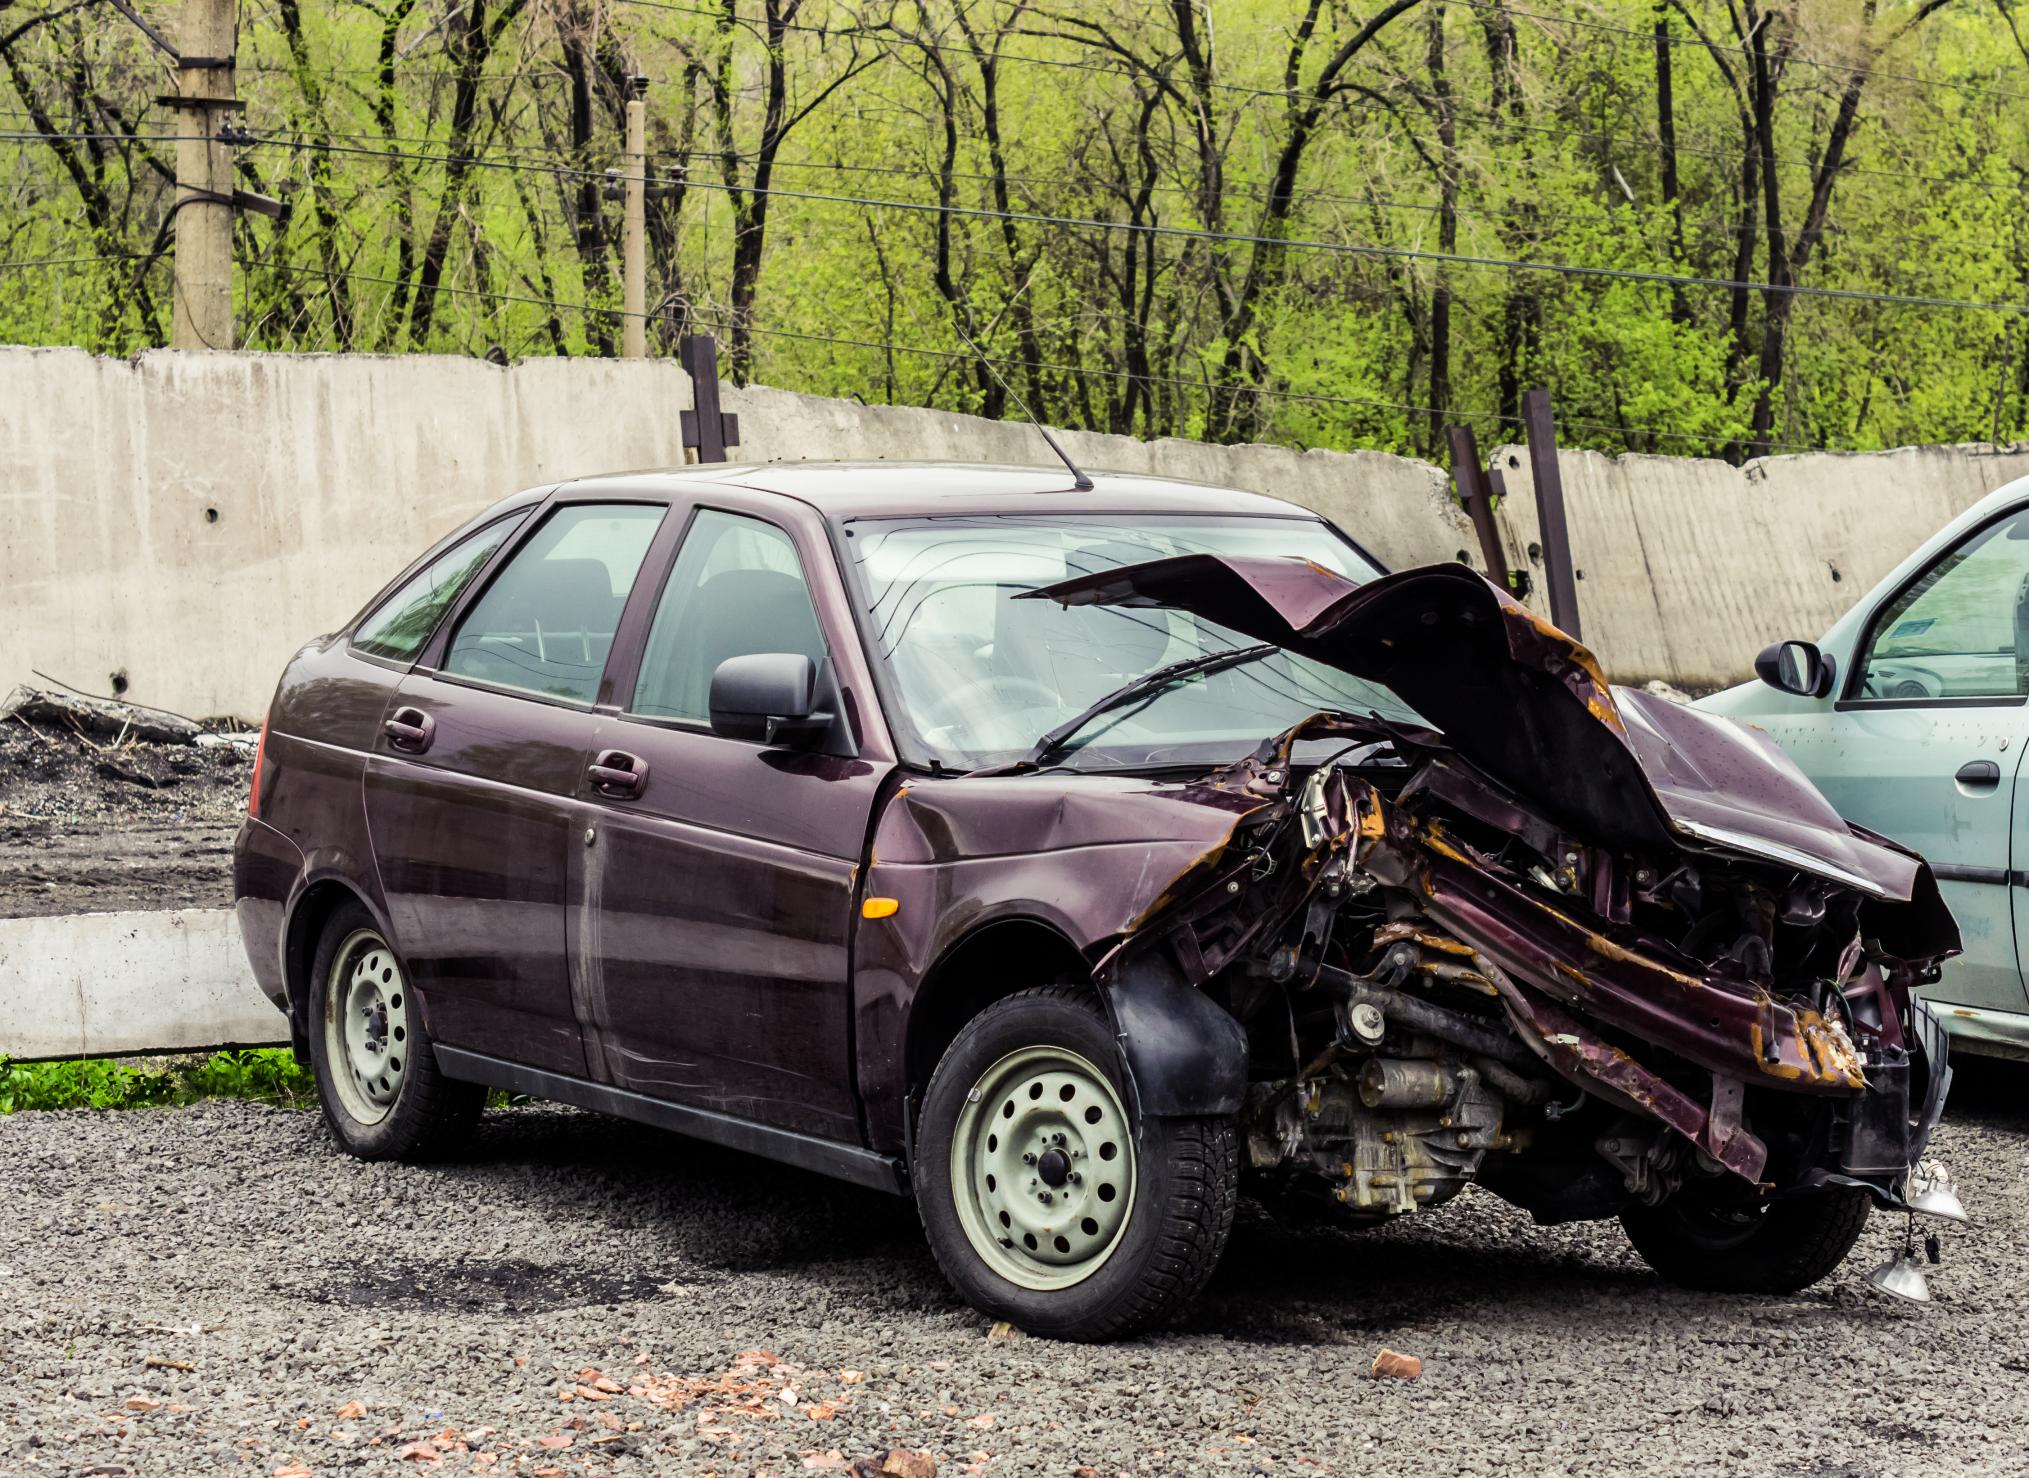 This is a picture of a car wrecked.